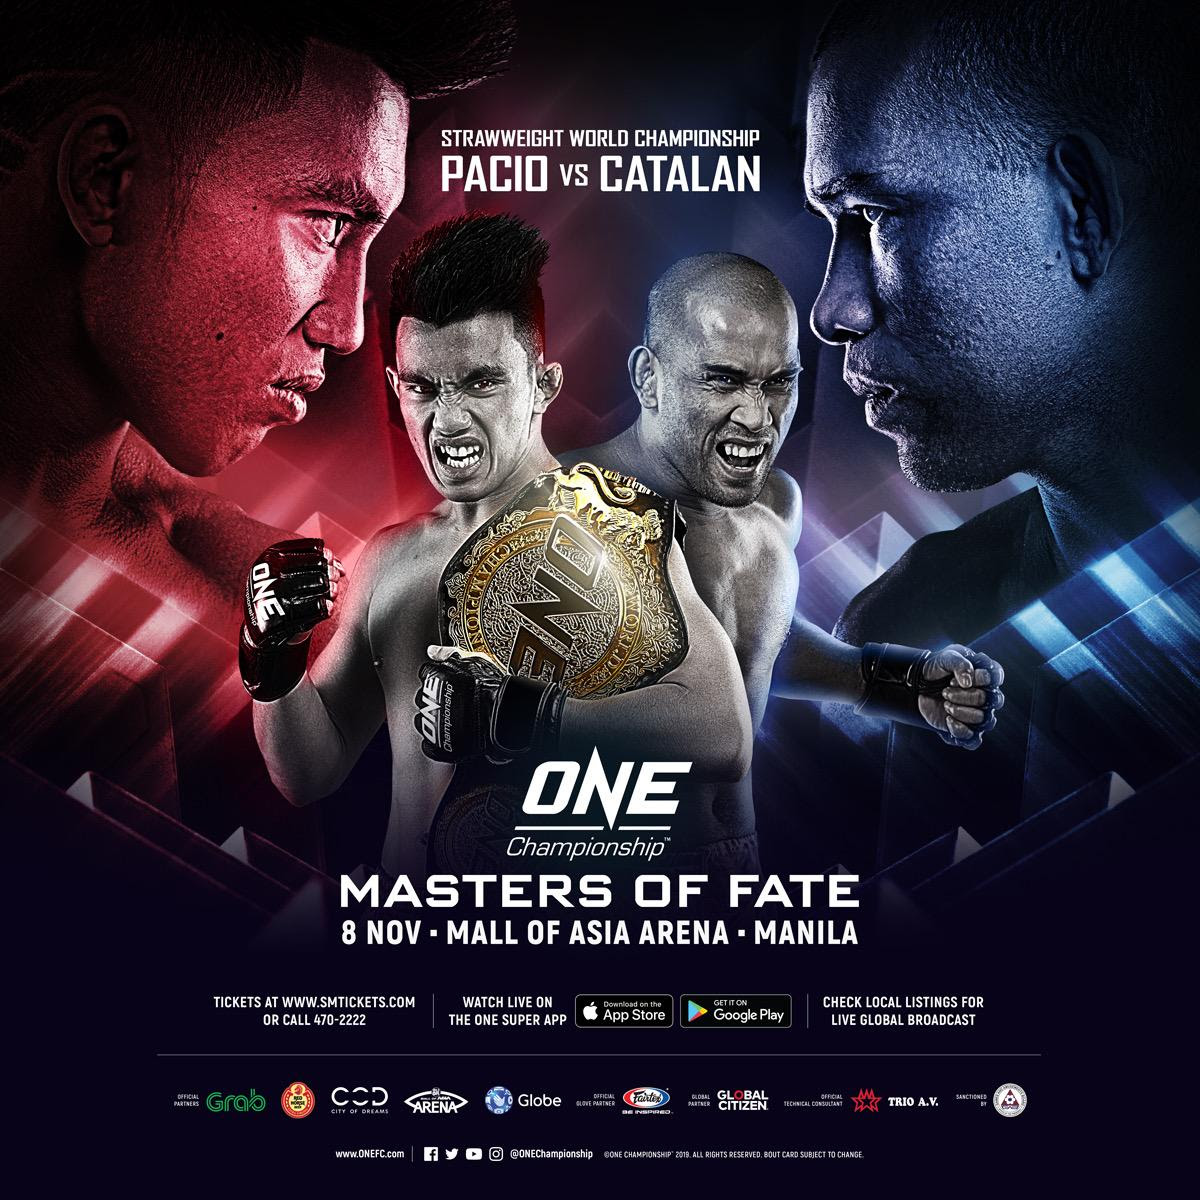 JOSHUA PACIO TO DEFEND ONE STRAWWEIGHT WORLD CHAMPIONSHIP AGAINST RENE CATALAN - ONE Championship